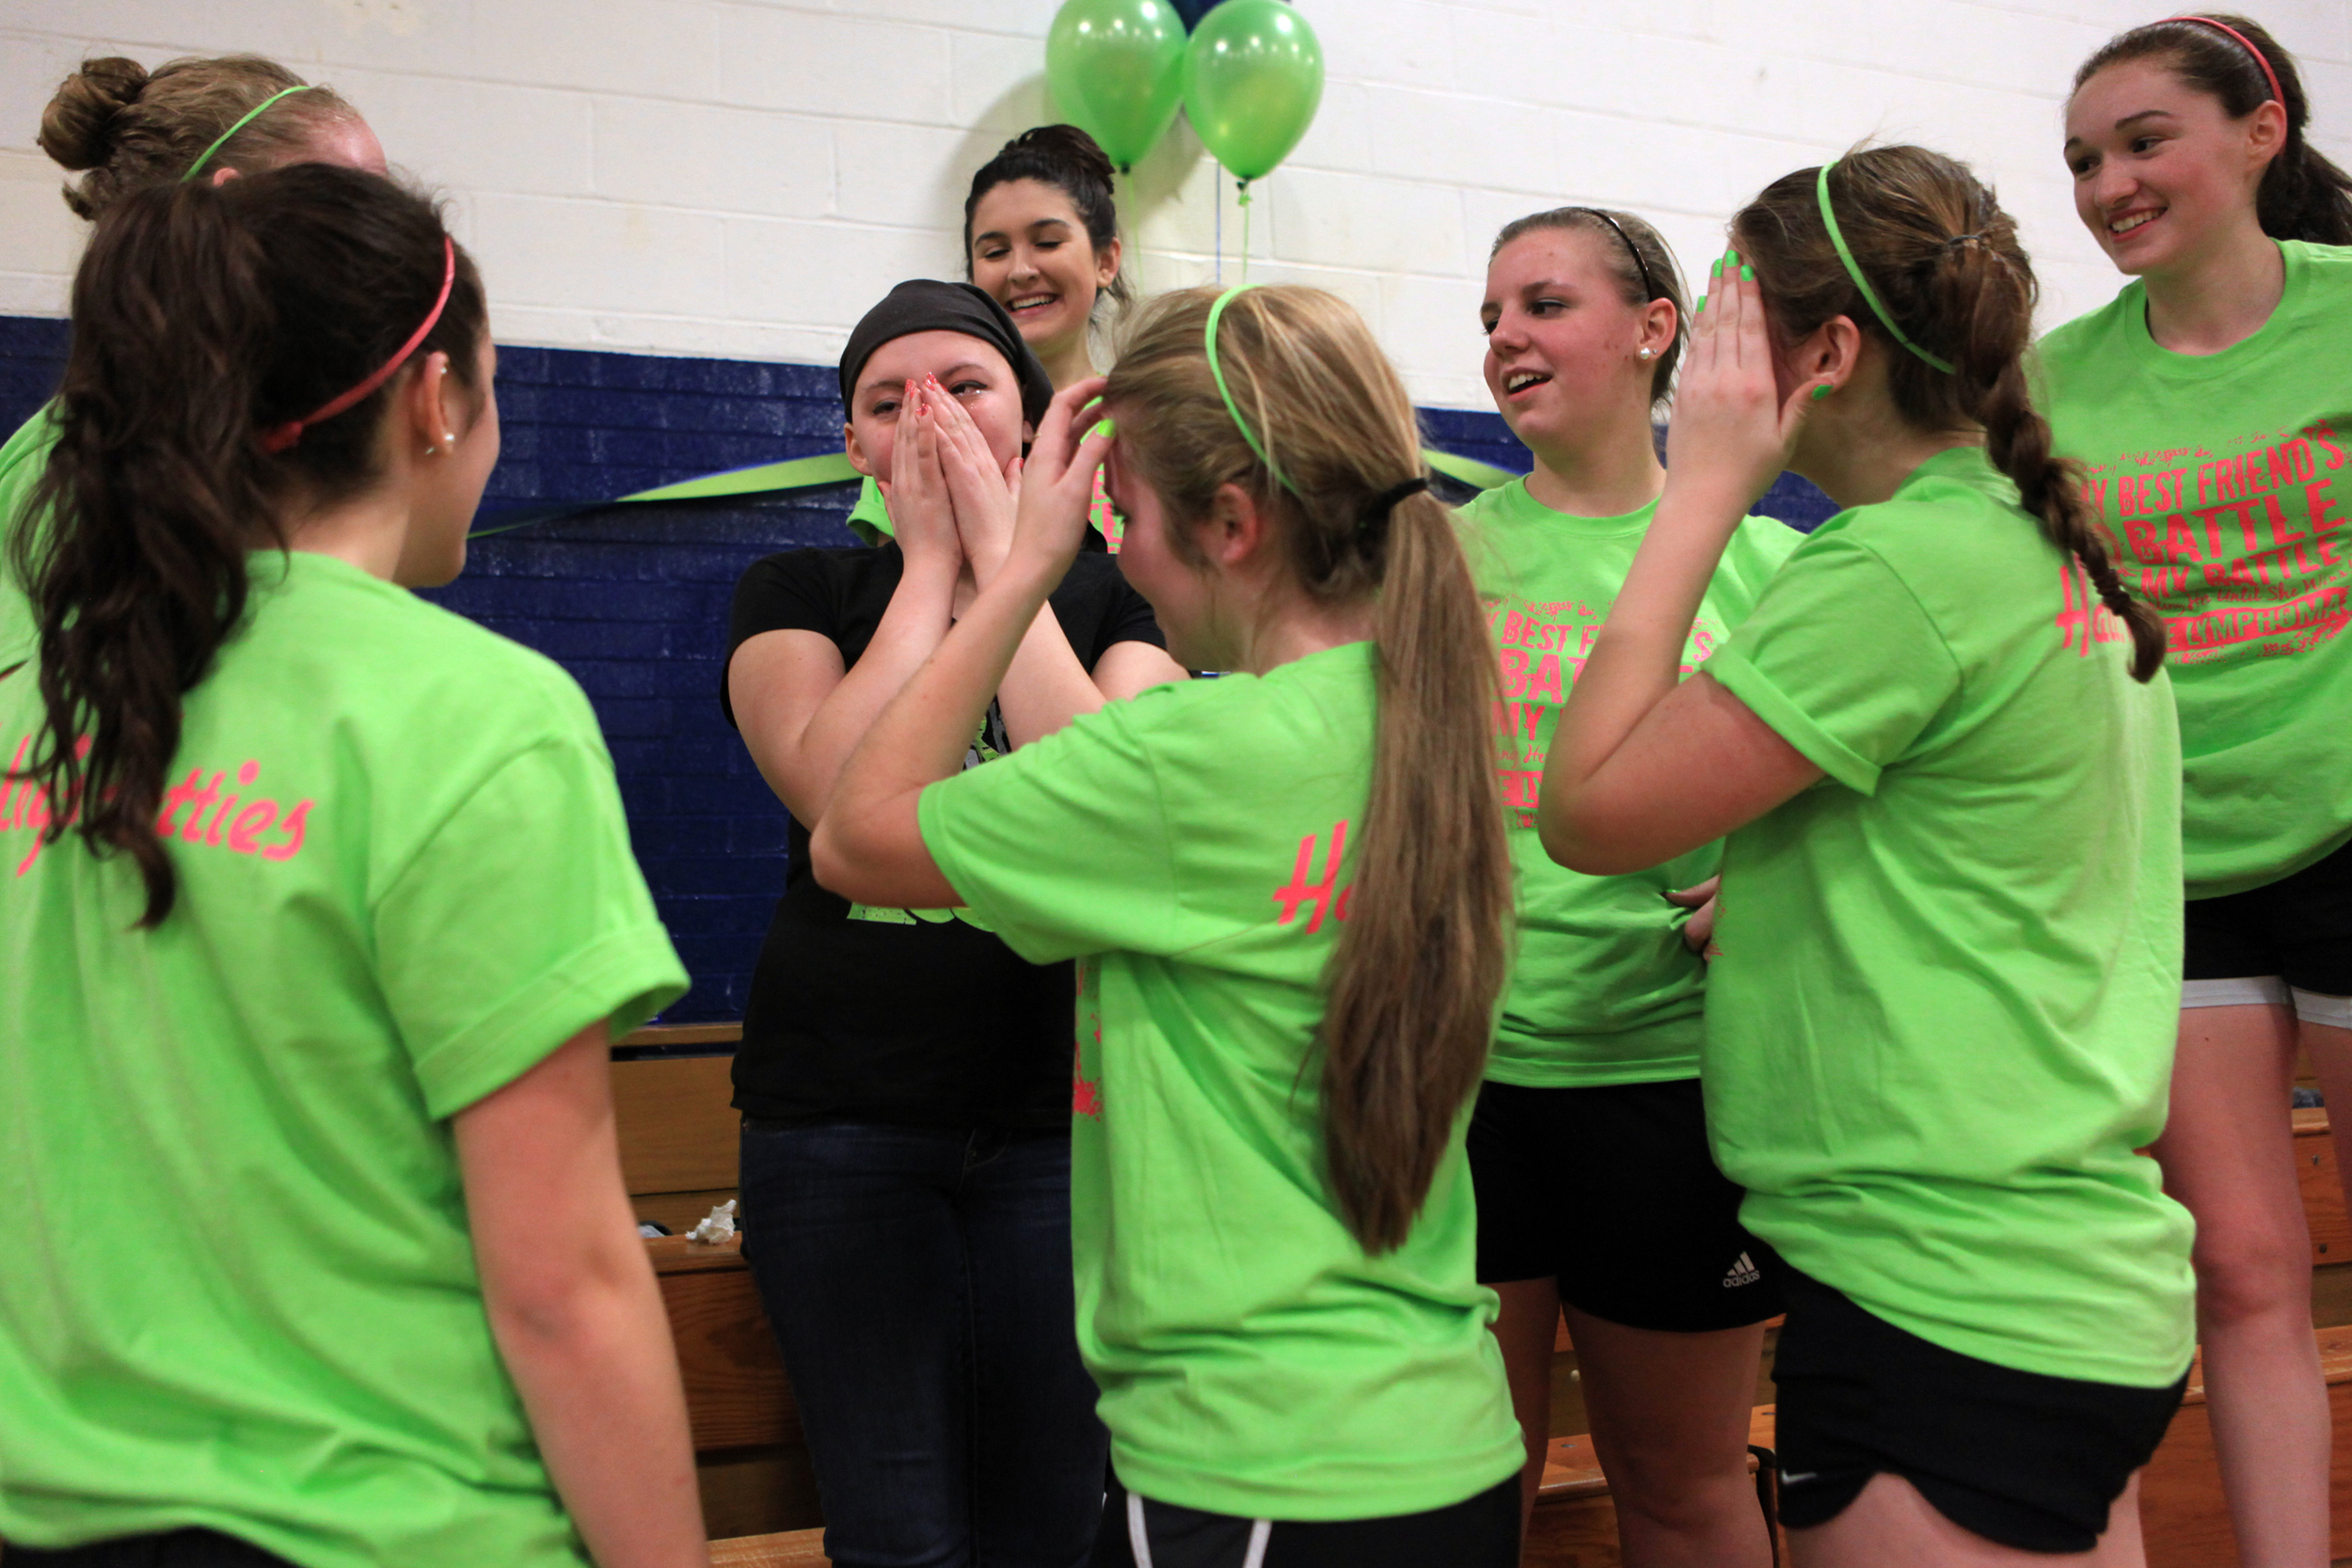 """Merrimack Valley sophomore Haley Roy, 15, who has Lymphoma, wiped away tears as her friends Molly Brochu, left, 15, Sierra Dube, 15, Celine Burrows, 15, Callie Brochu, 15, Kristen Simoneau, 15, Mariah Elkins, 15, and Izzy Hoyt, 16, surround her after performing a zumba dance to the song Roar that they learned specially for her during a Zumbathon fundraiser to help pay for her treatment on Sunday, January 19, 2014. """"I don't know a lot of people here but they're all here for me. It kind of blows my mind,"""" said Haley."""